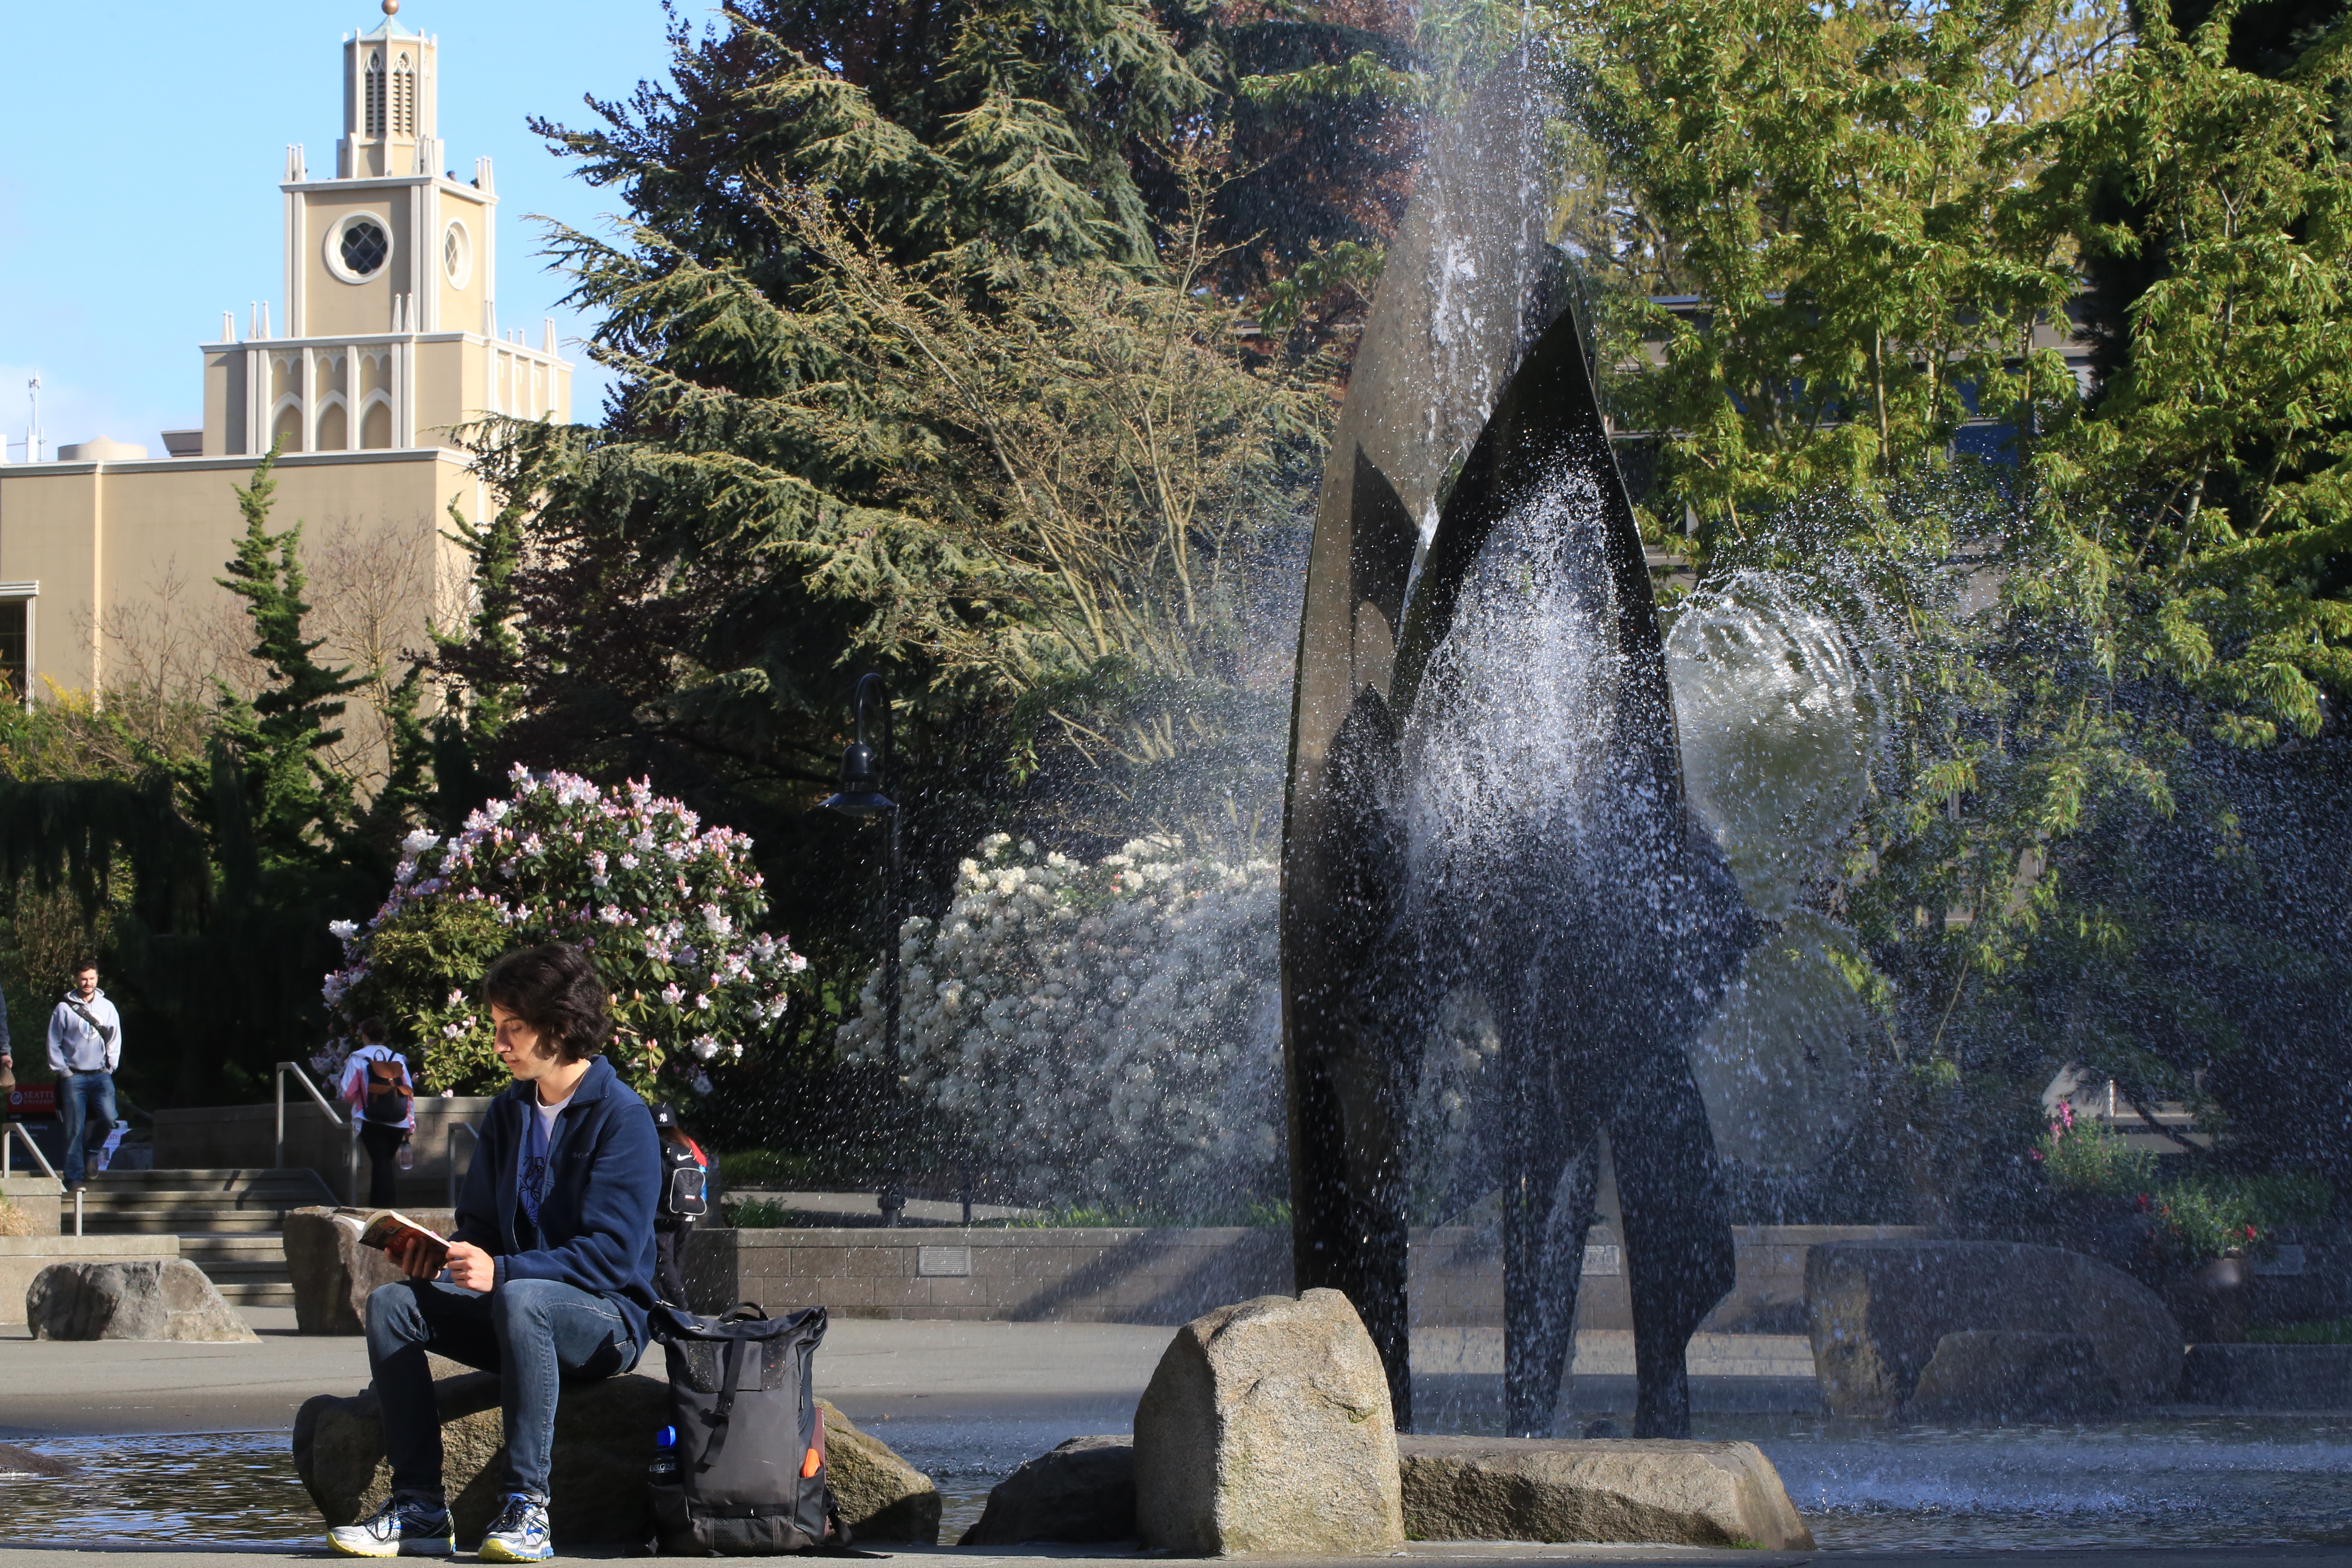 SU Campus fountain